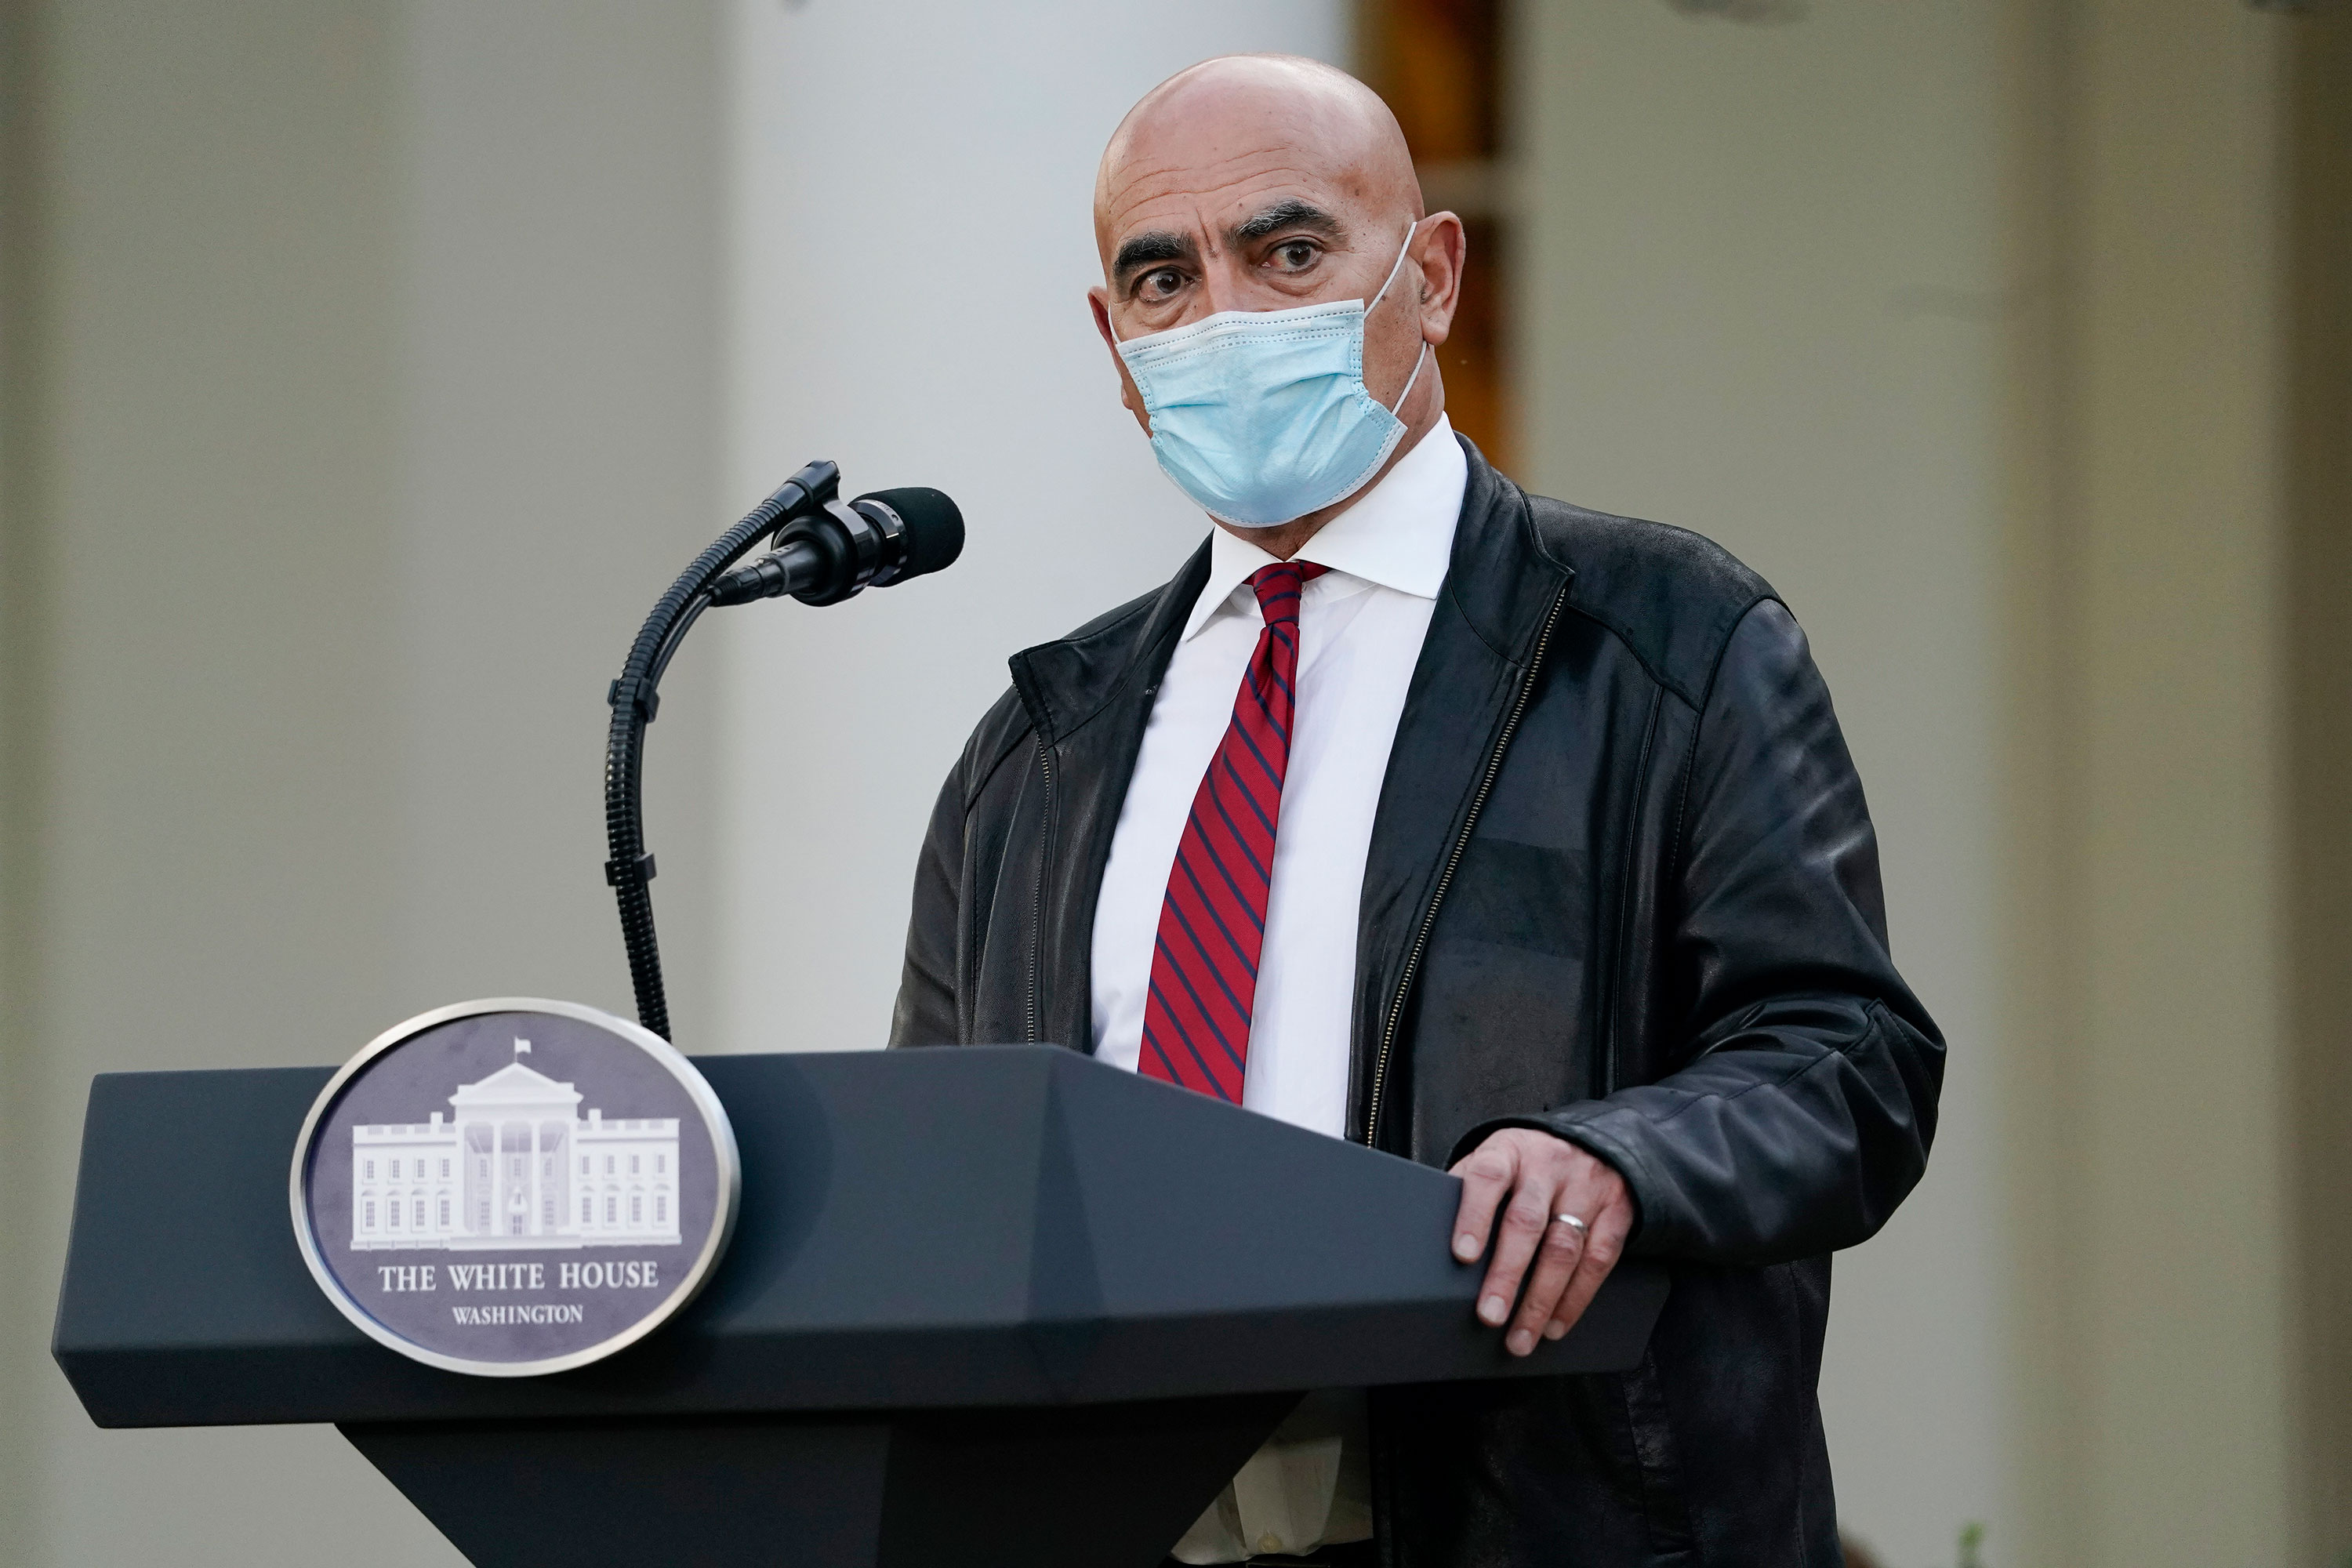 Dr. Moncef Slaoui, chief adviser to Operation Warp Speed, speaks at the White House on November 13 in Washington, DC.